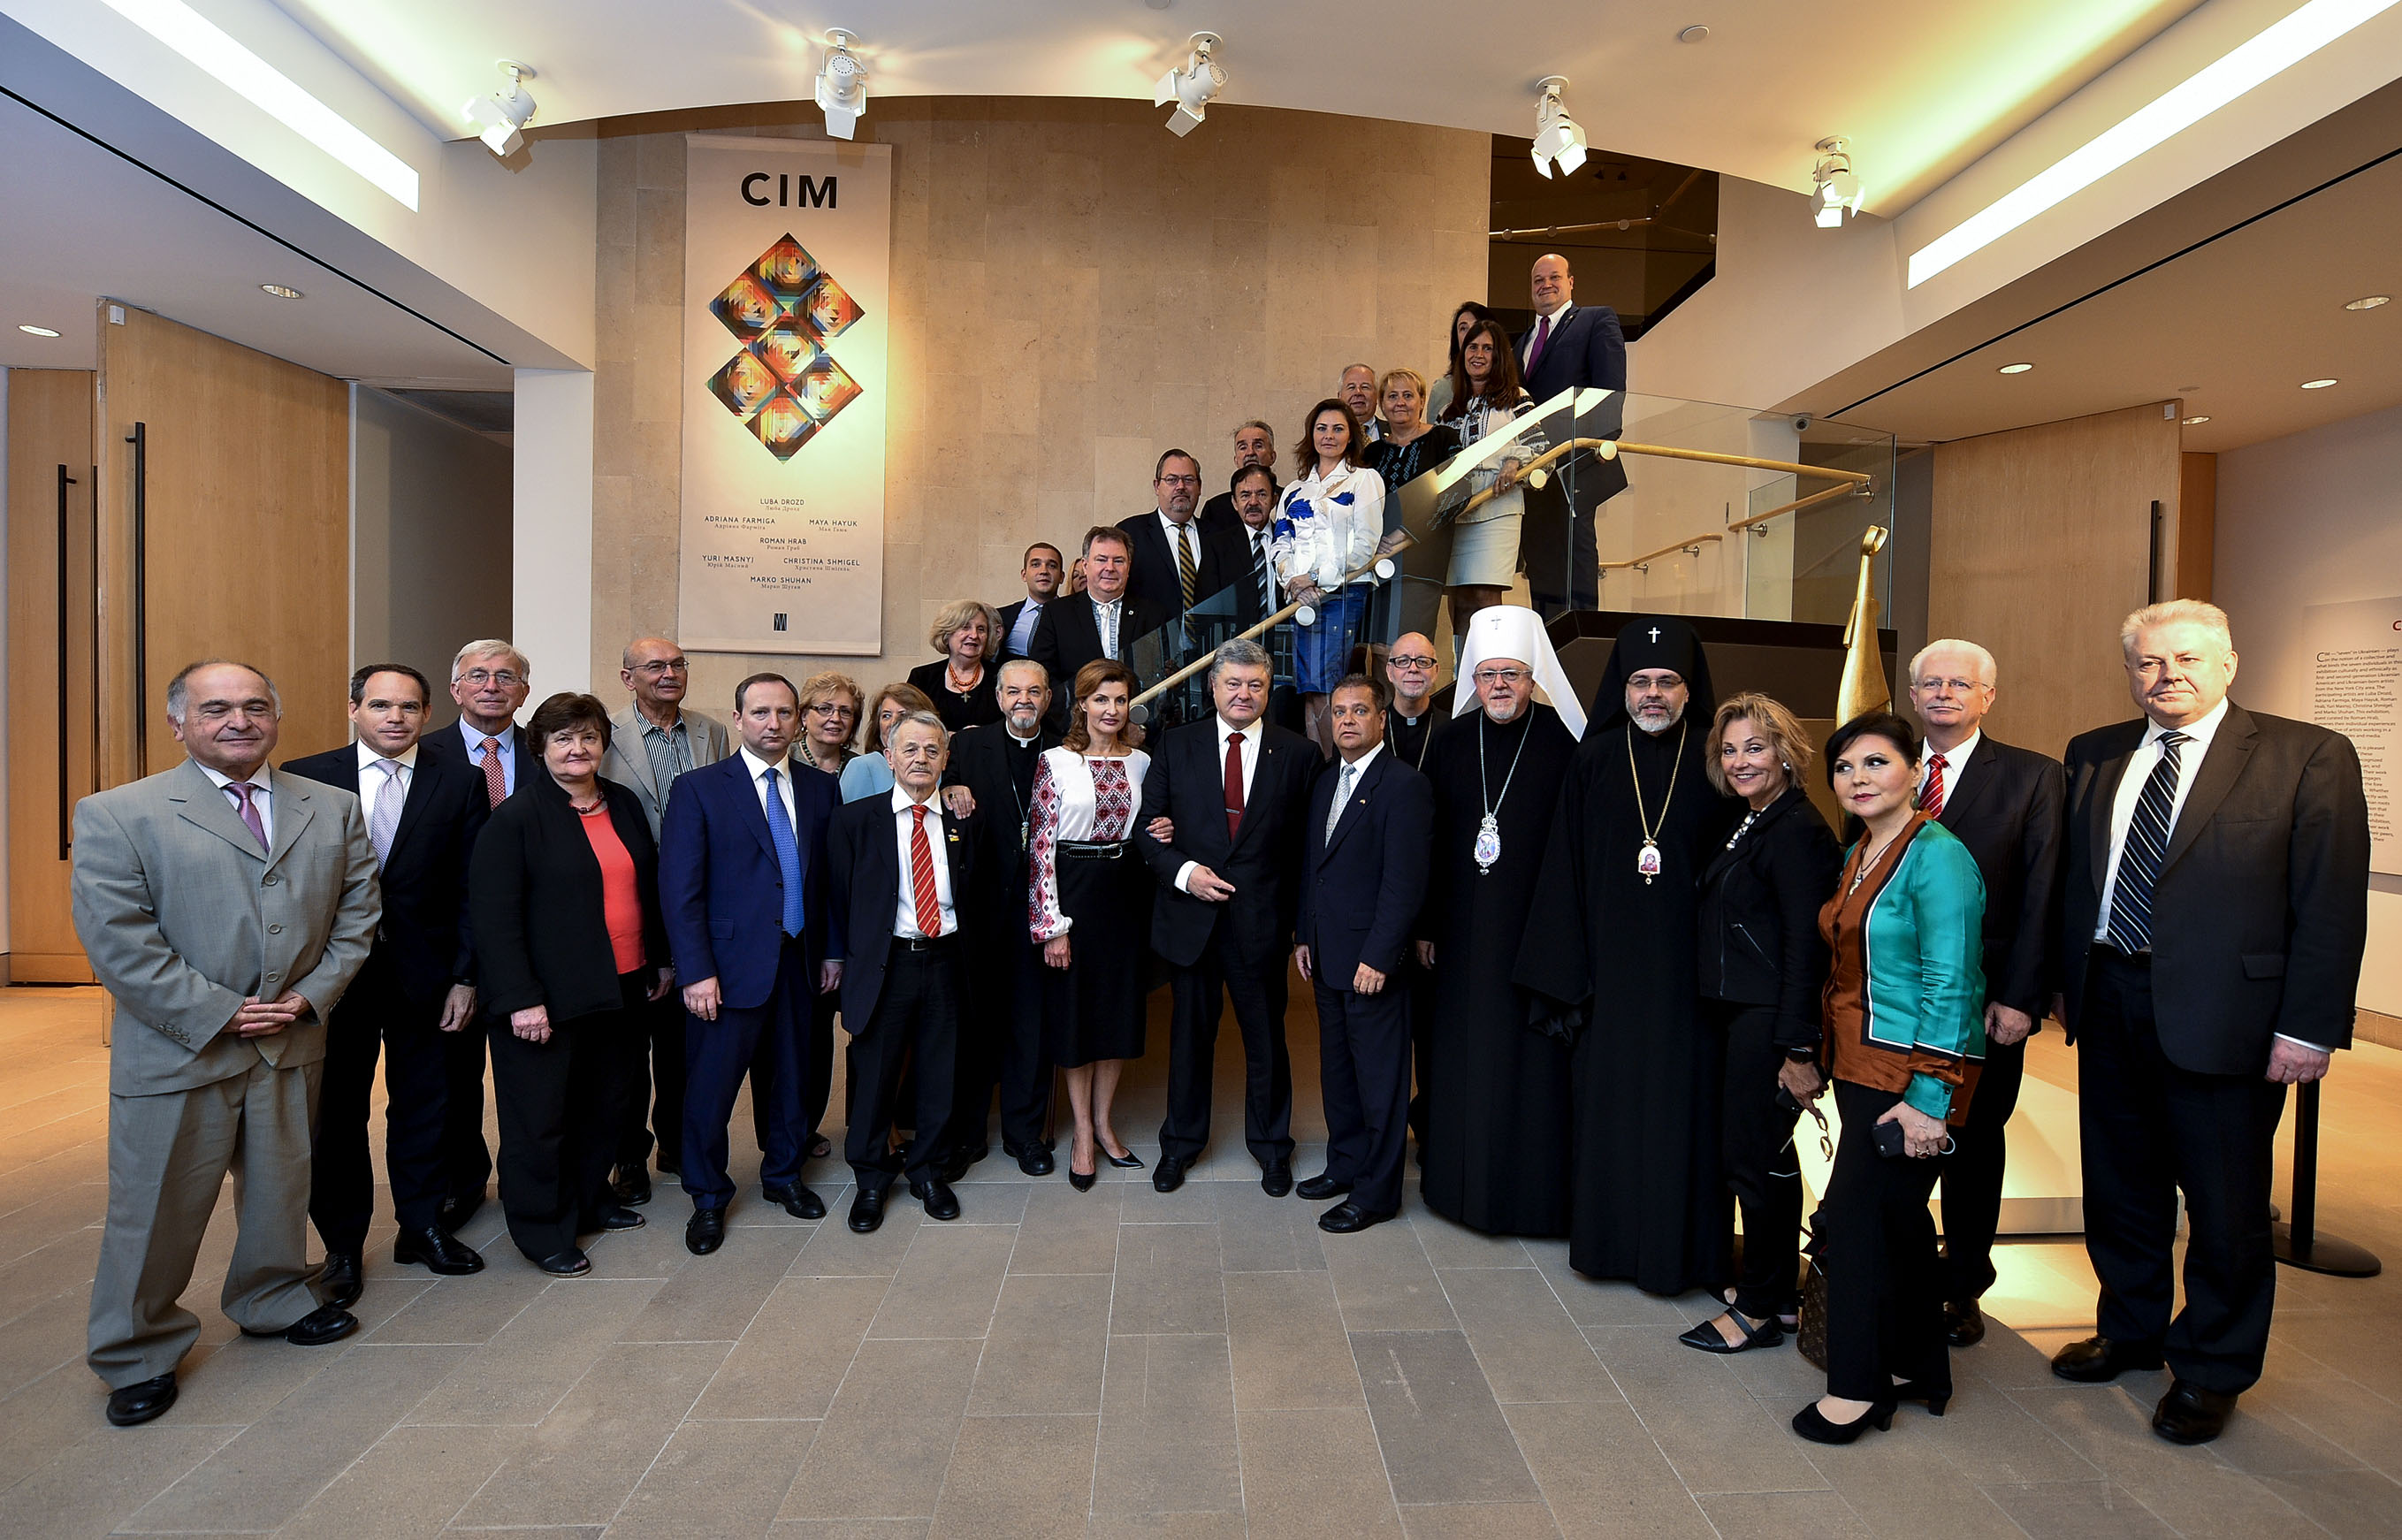 Poroshenko meets UOC-USA and Tatar leaders during UN visit to USA